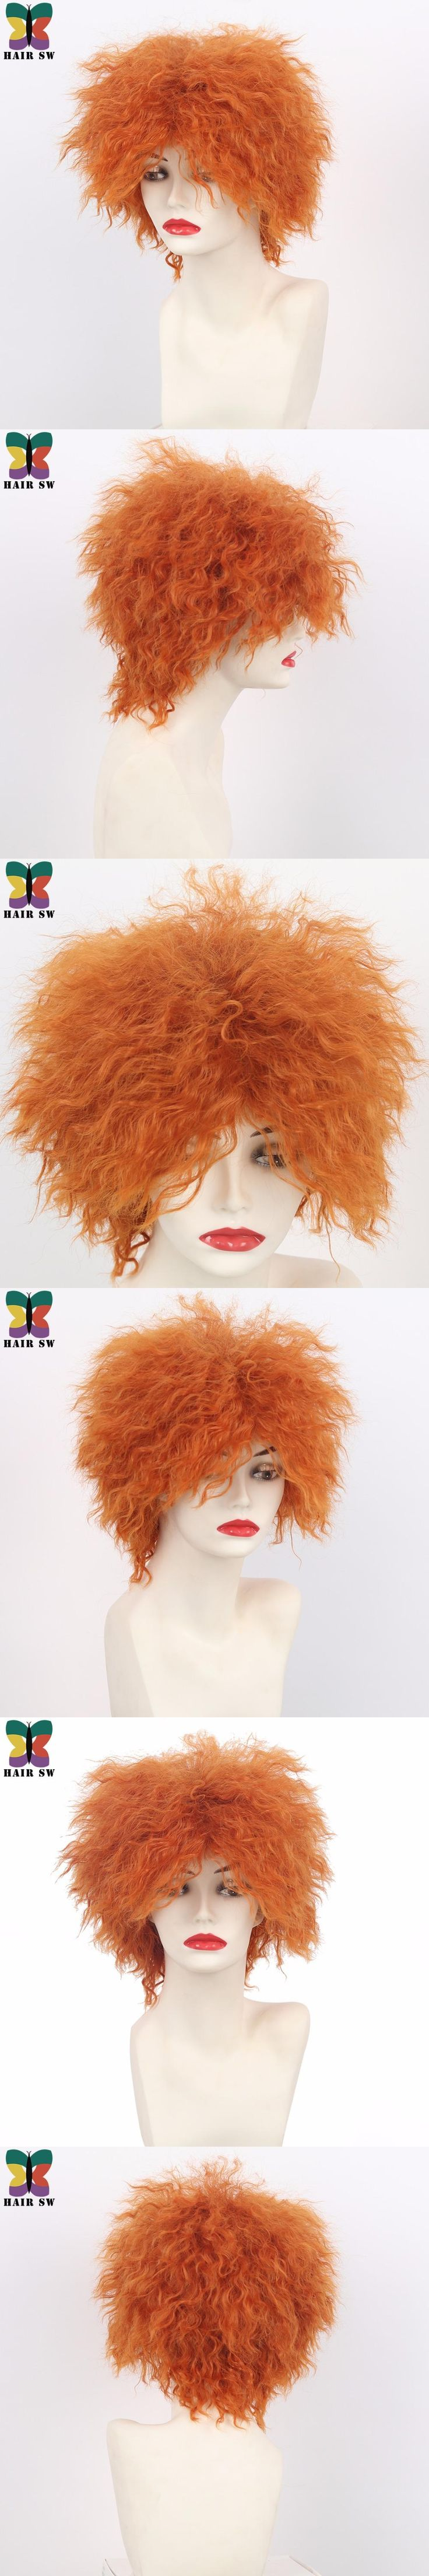 HAIR SW Short Curly Fluffy Synthetic Cosplay Mad Hatter Wig Orange High Temperature Fiber Movie Wigs For Halloween Party City